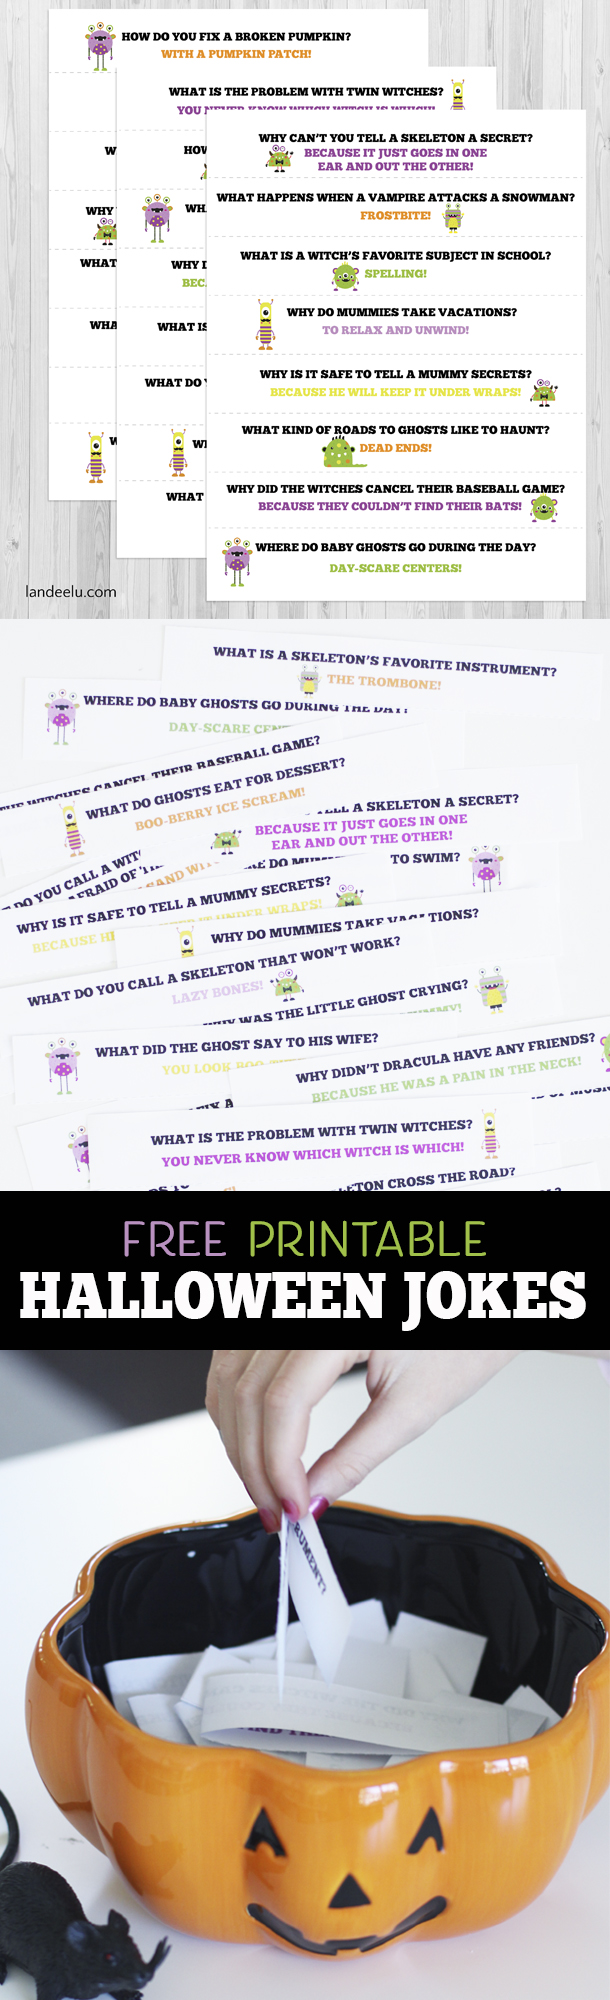 These printable Halloween jokes are perfect to put in a lunchbox or to take turns telling at a Halloween party!